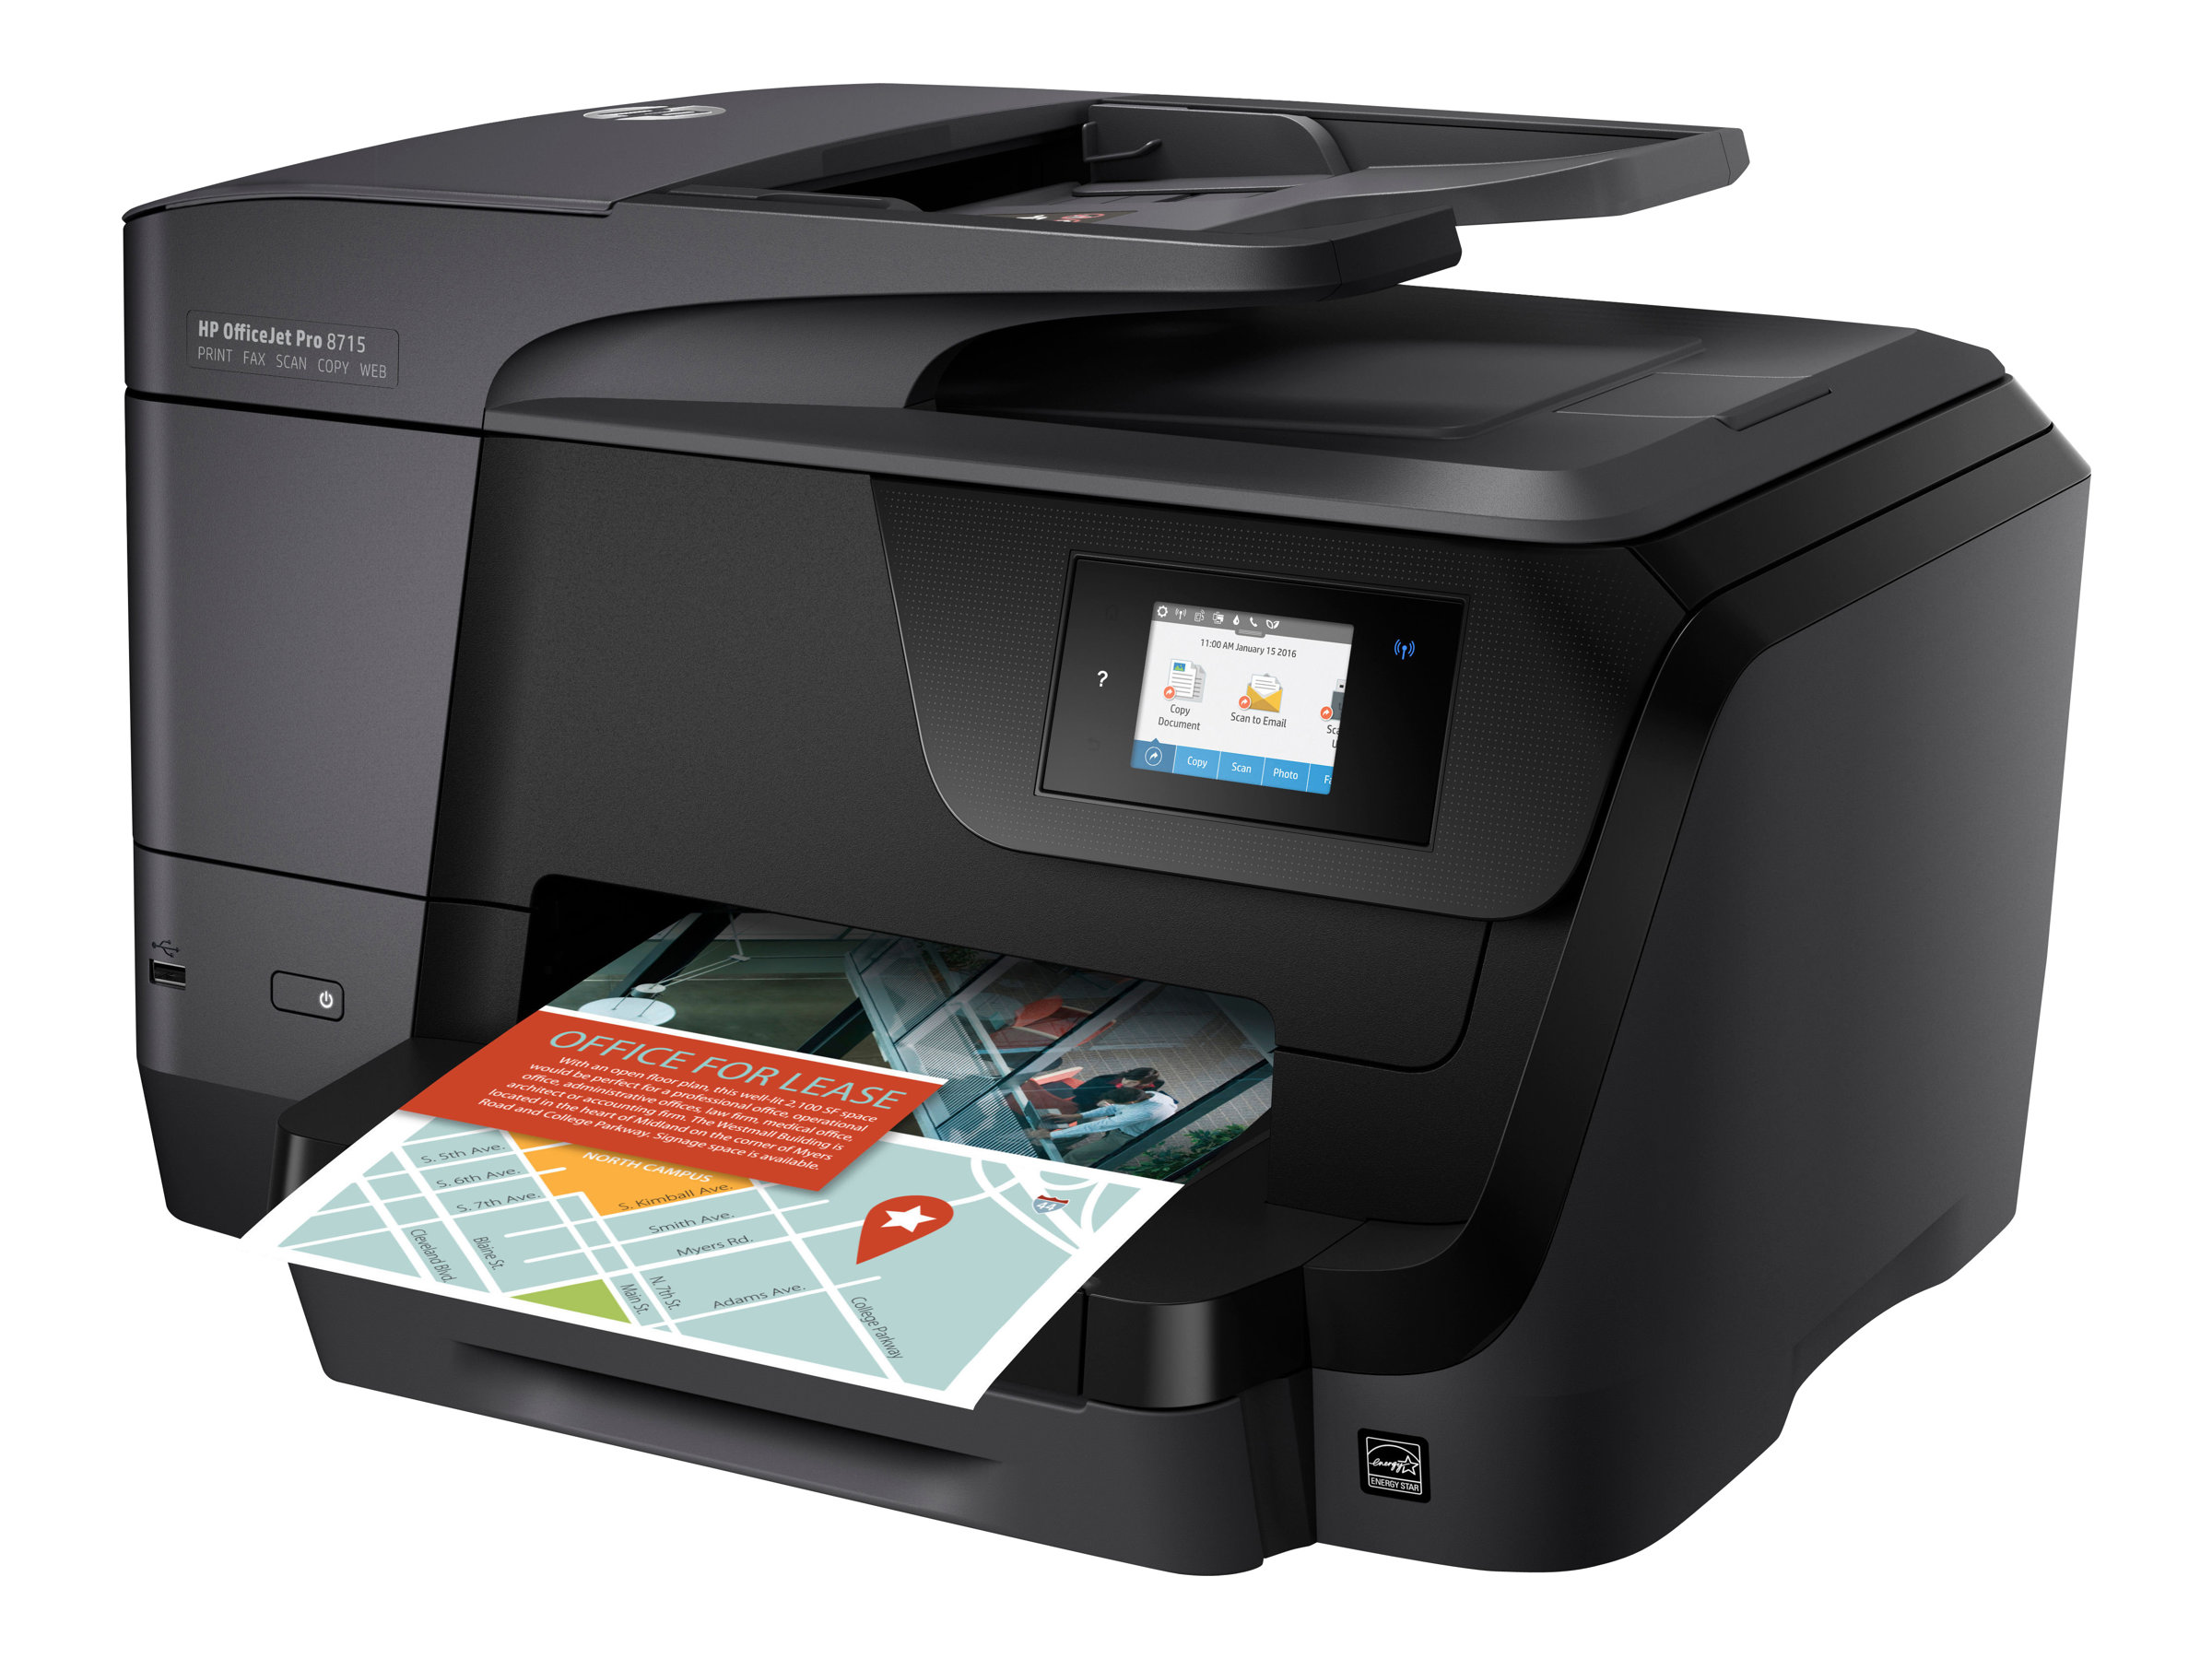 HP Officejet Pro 8715 All-in-One - Multifunktionsdrucker - Farbe - Tintenstrahl - Legal (216 x 356 mm)